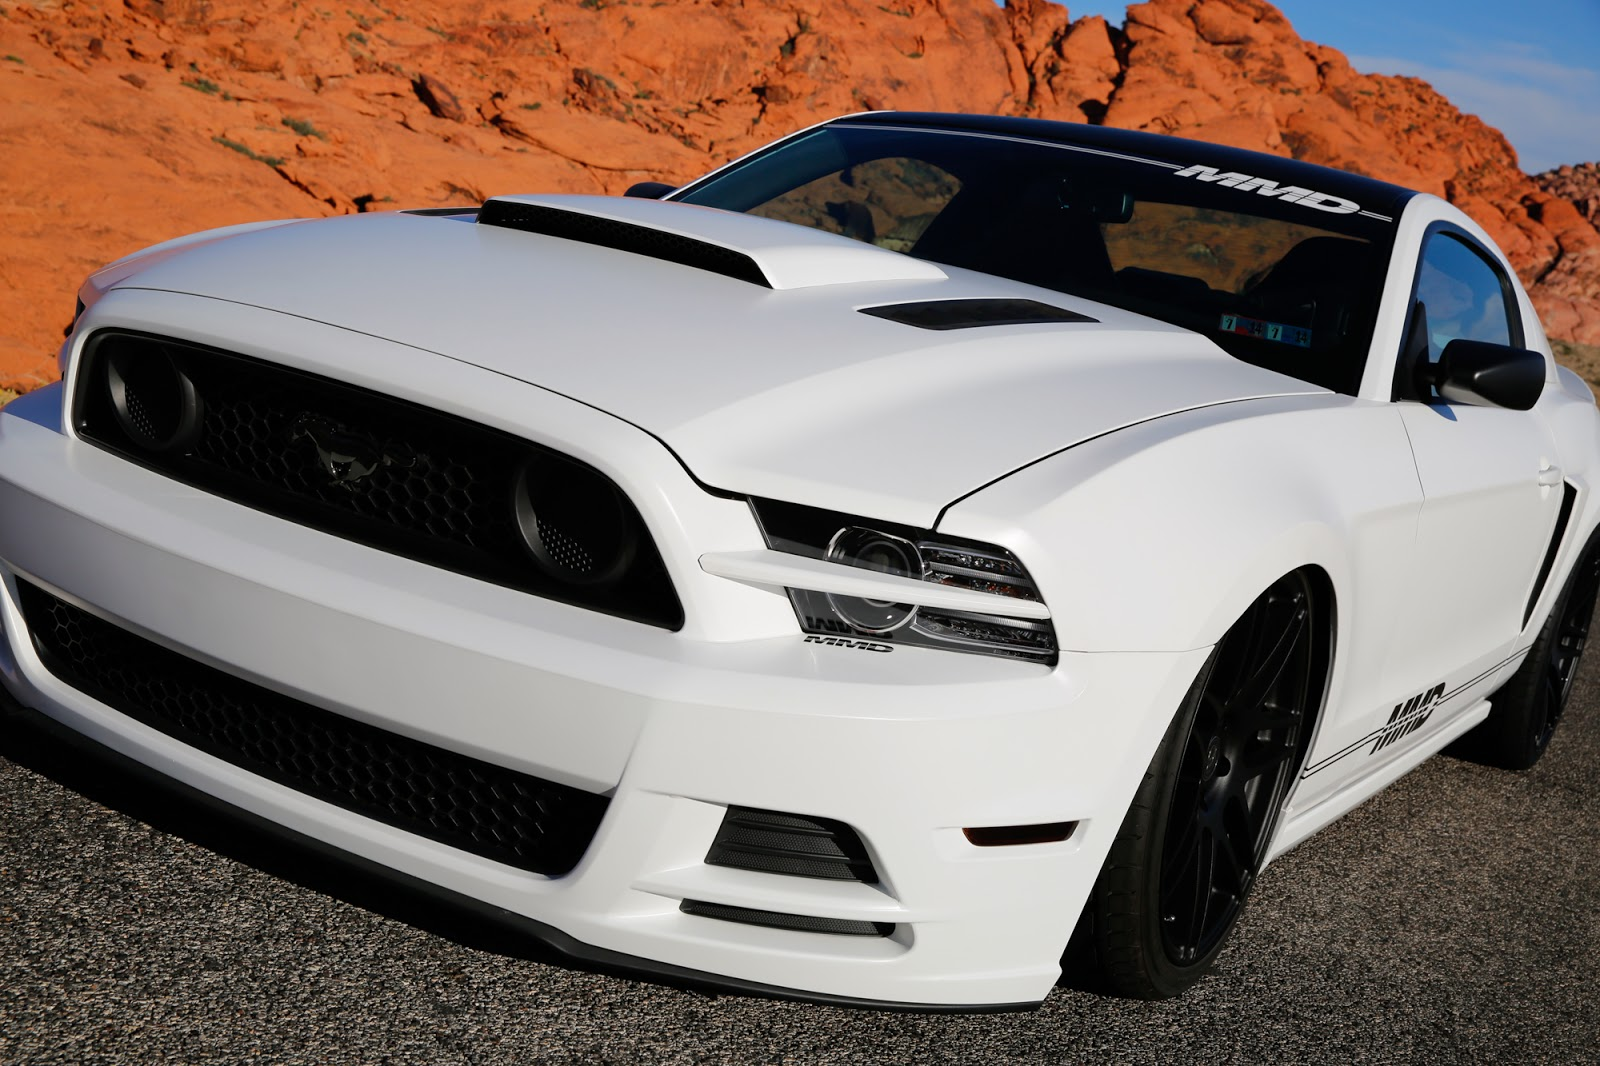 drive away in their SEMA built, custom 2014 Mustang GT—Project MMD